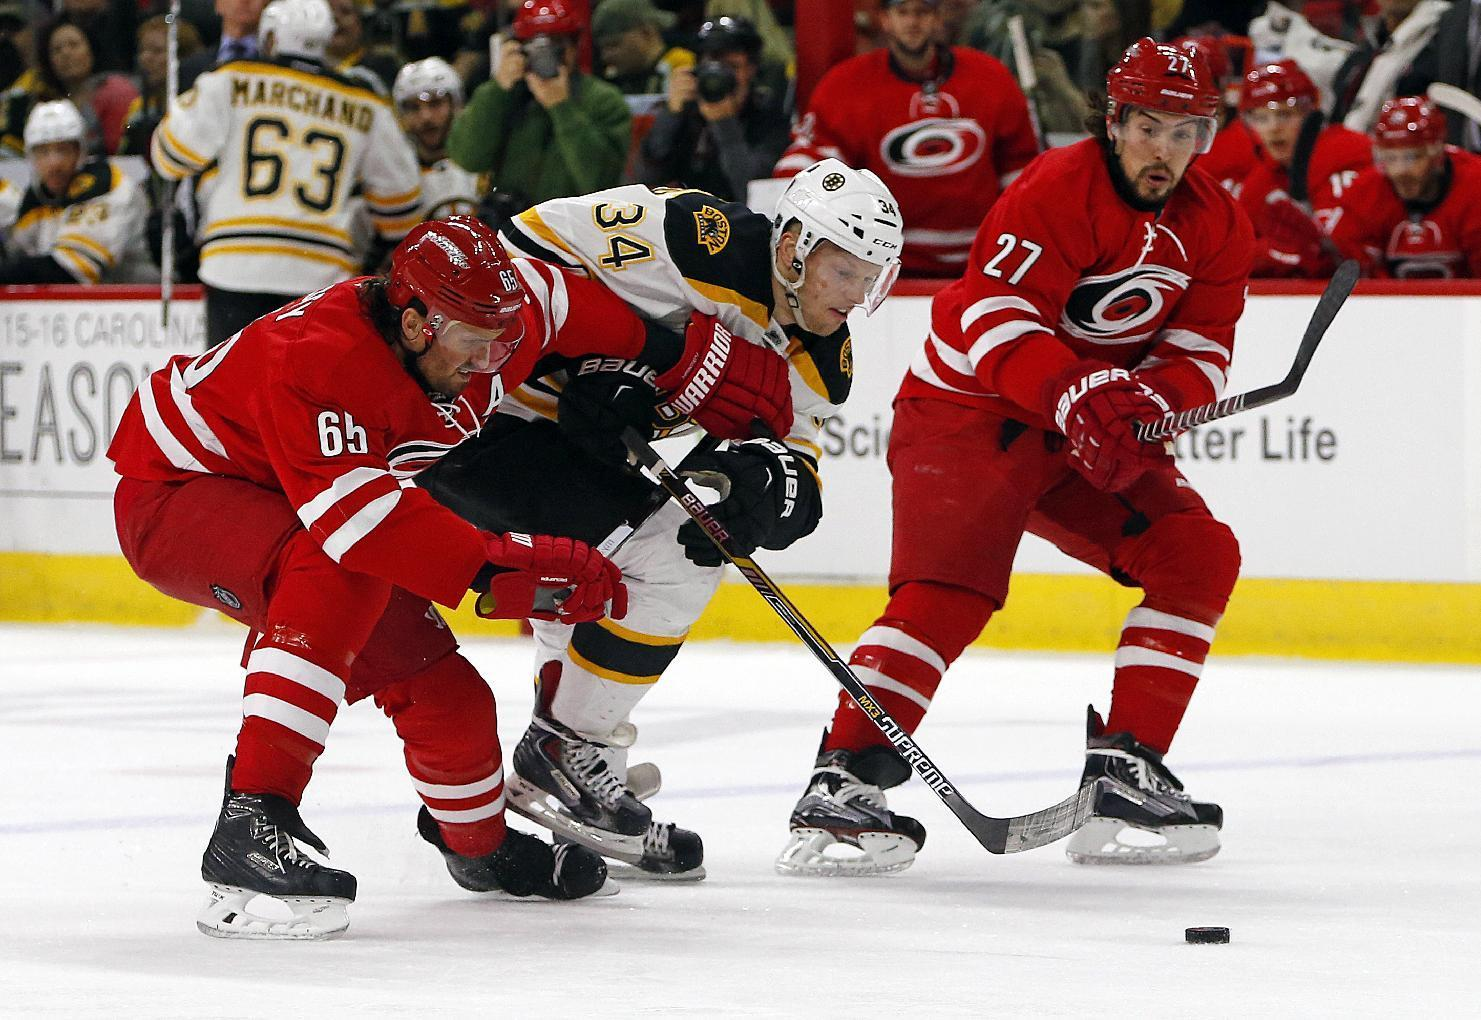 Bruins edge Hurricanes 2-1 in OT